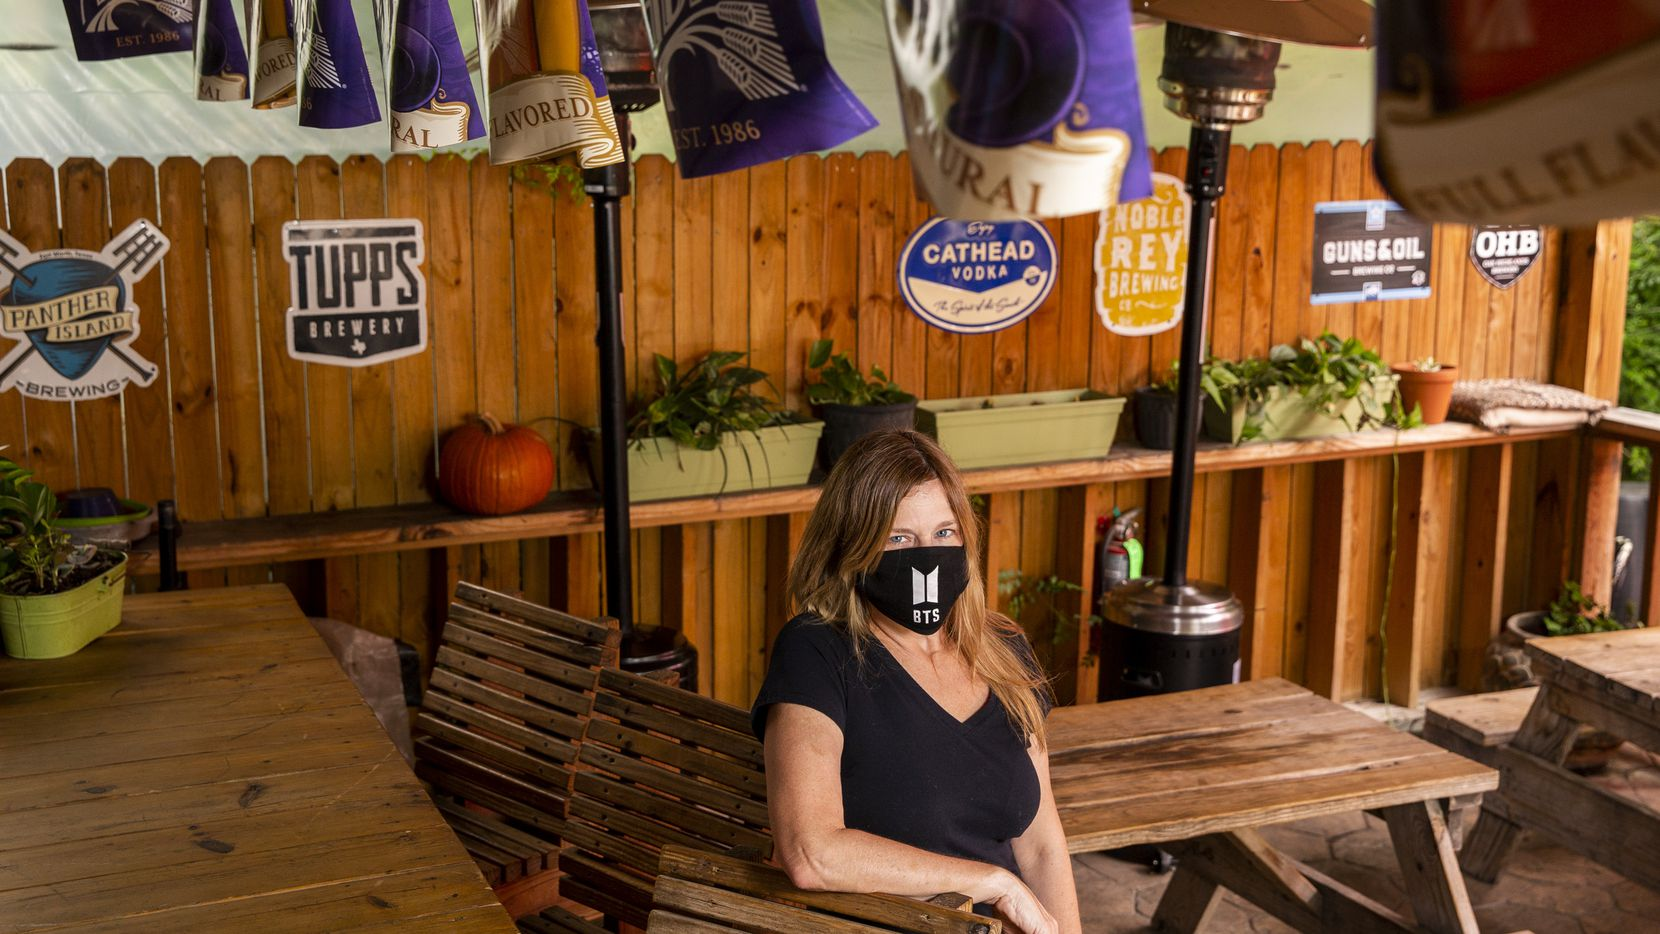 Owner Meri Dahlke poses for a portrait at Ten Bells Tavern in the Bishop Arts District of Dallas on Thursday, May 21, 2020. Texas Governor Greg Abbott announced on Monday that bars may begin reopening at 25% capacity on Friday.  (Lynda M. Gonzalez/The Dallas Morning News Pool)